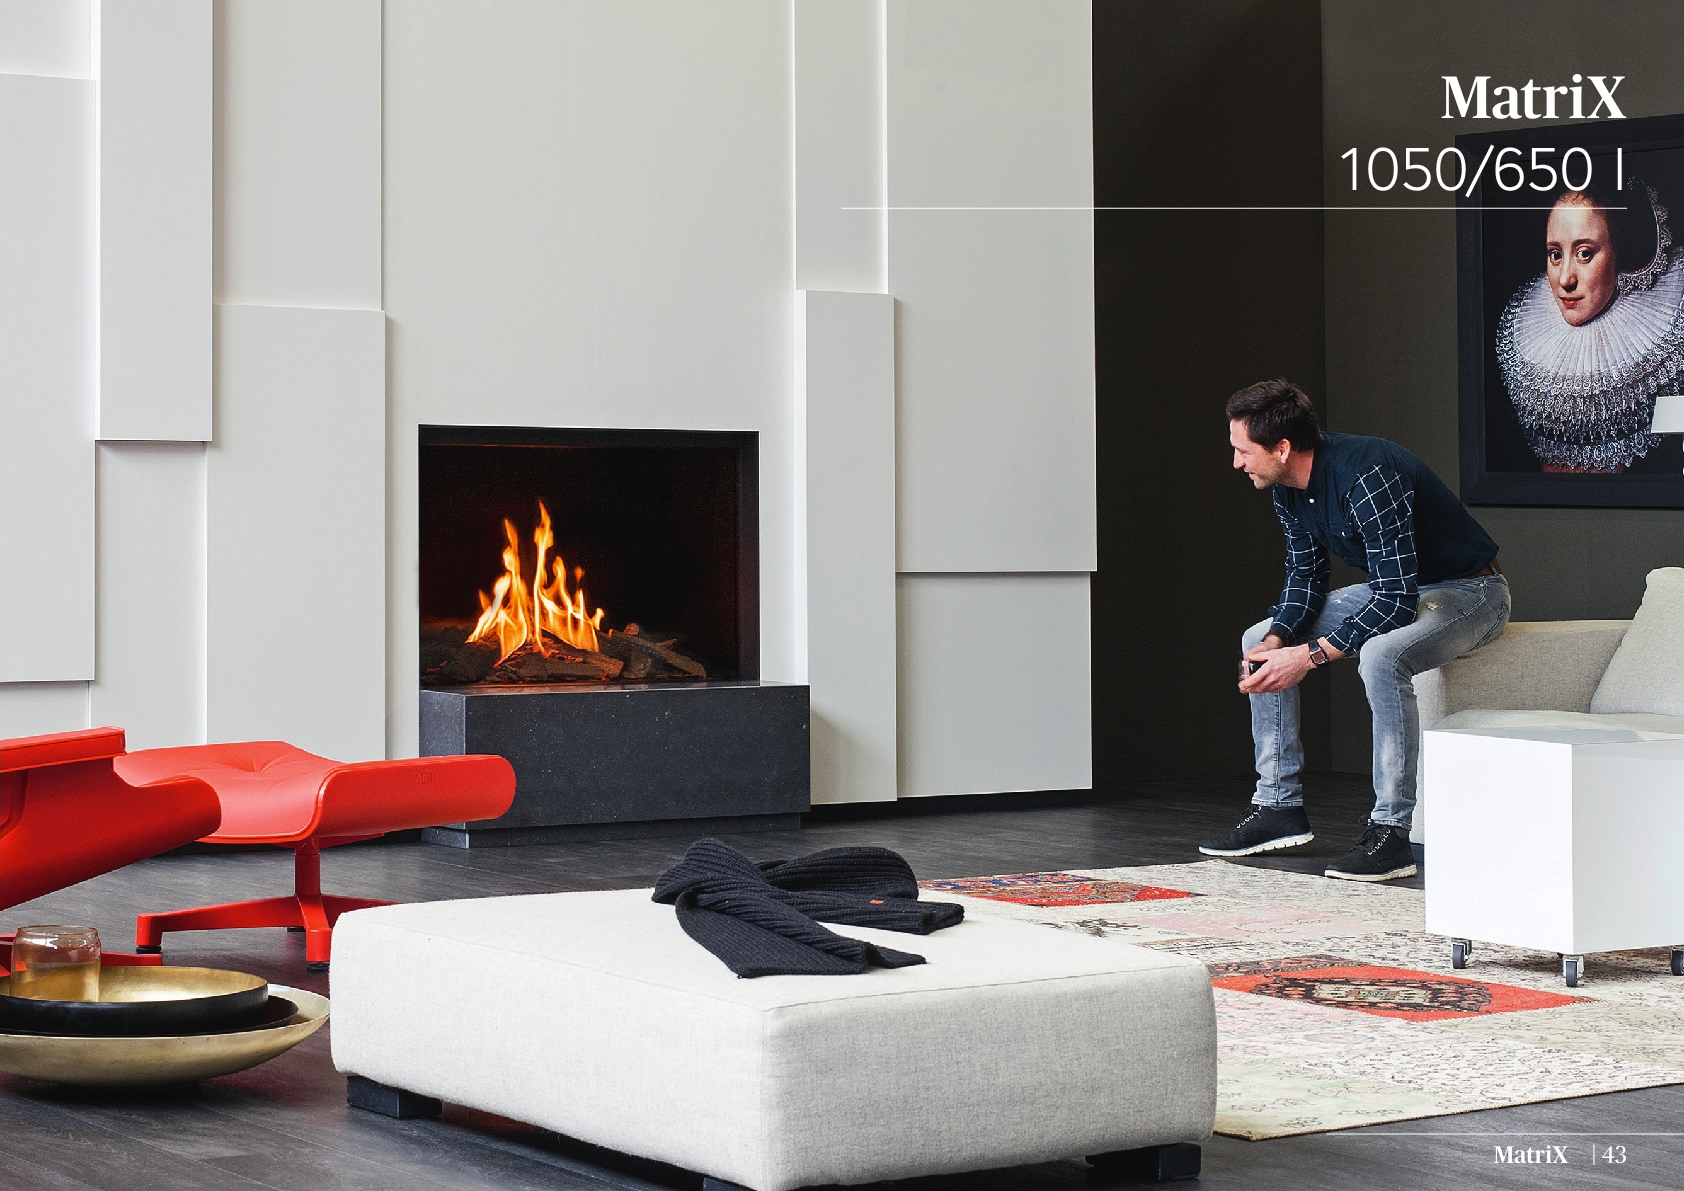 Faber Natural Gas Fireplaces - MATRİX 1050 / 650 I